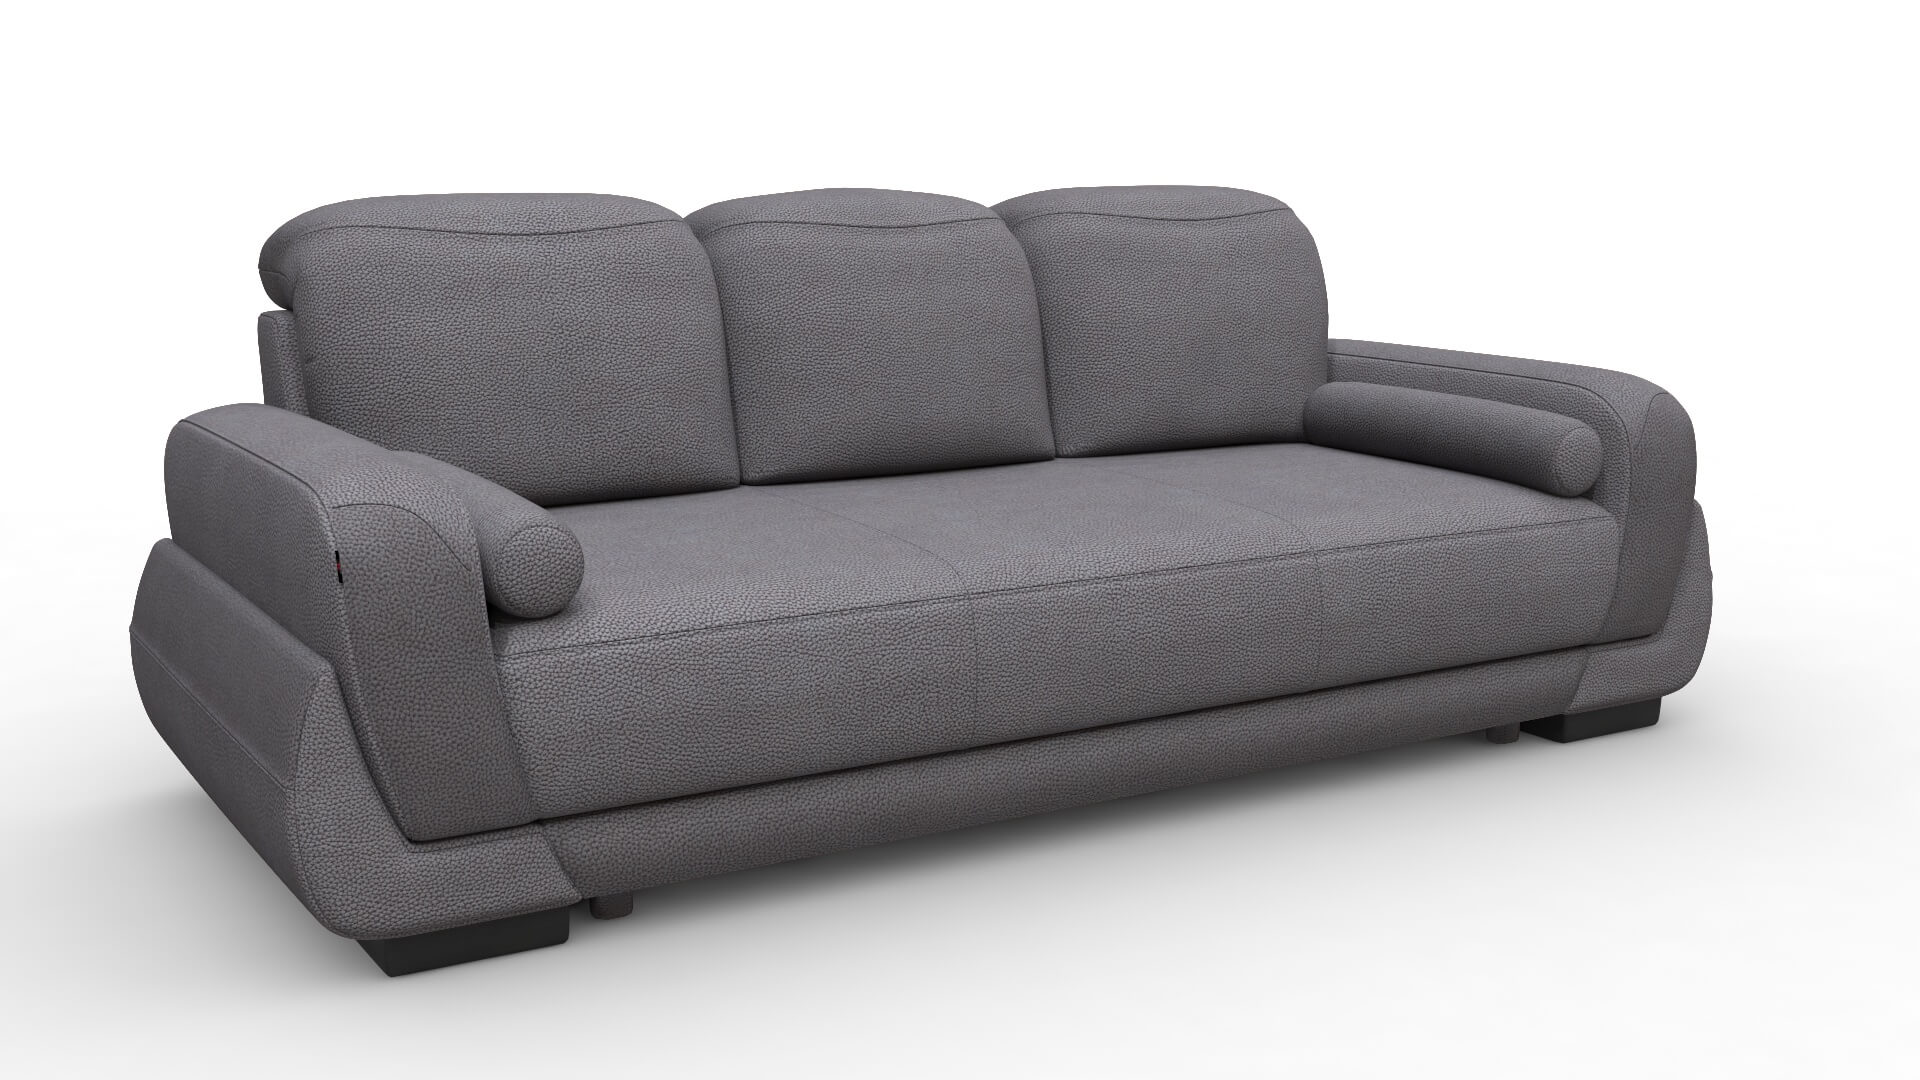 ATLANTIC sofa miegama